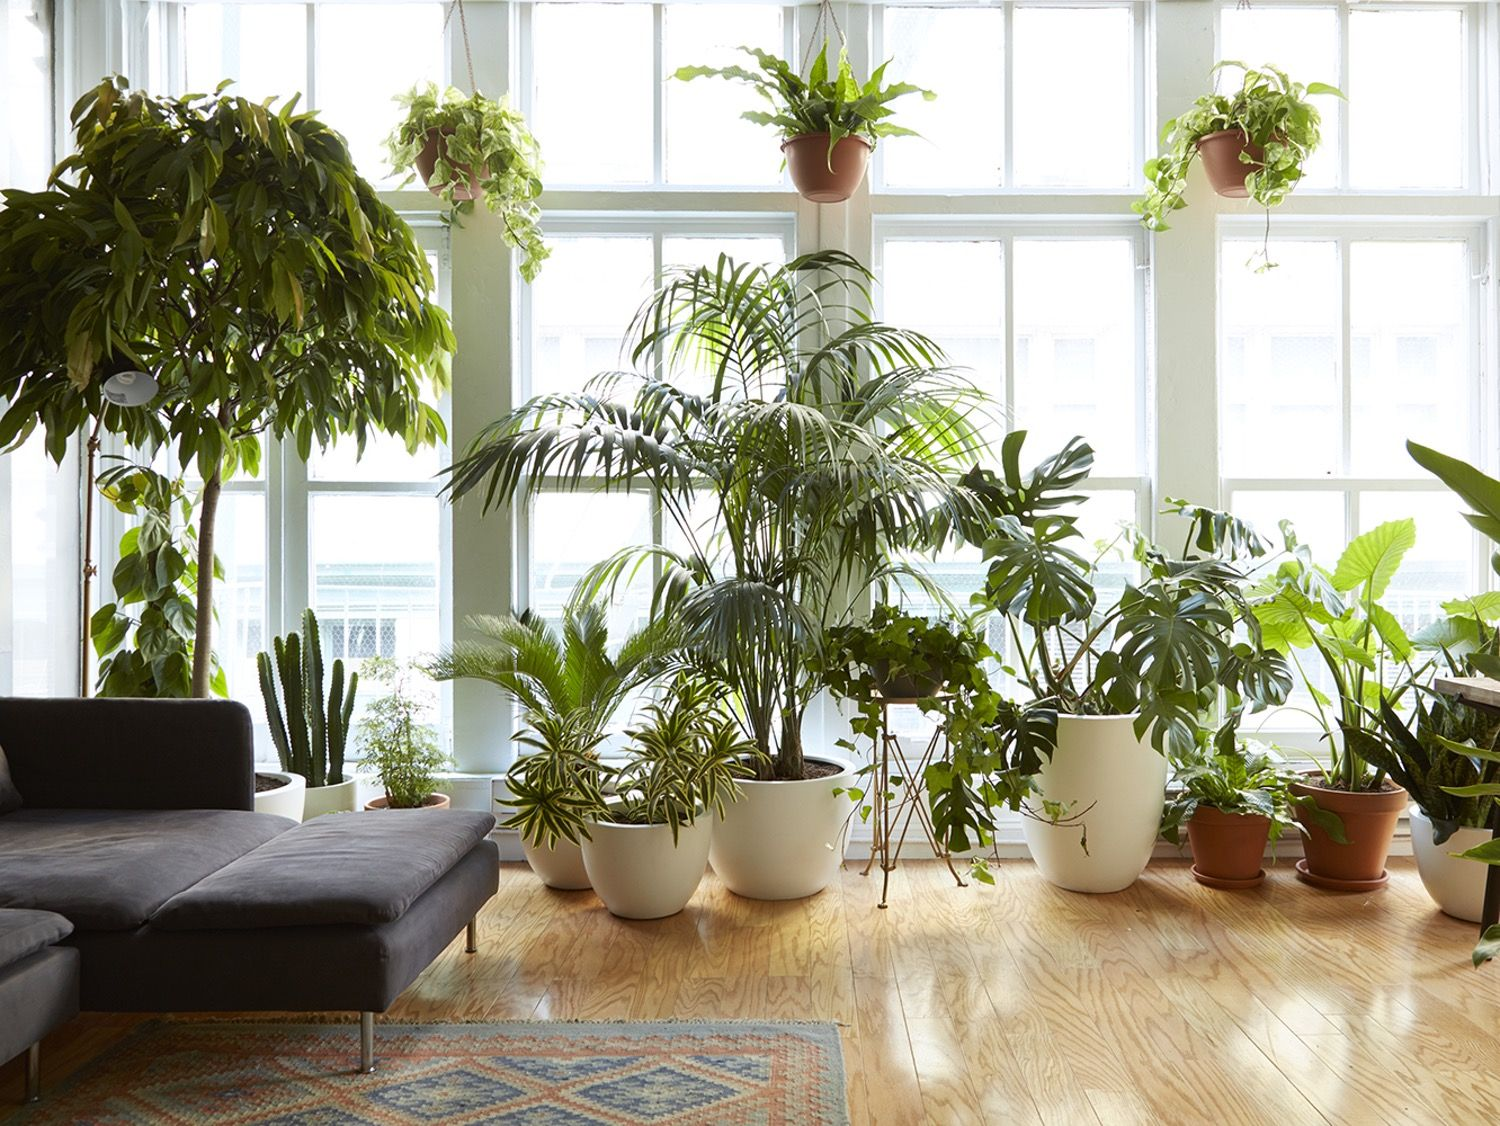 8 Houseplants that Can Survive Urban Apartments, Low Light and ...